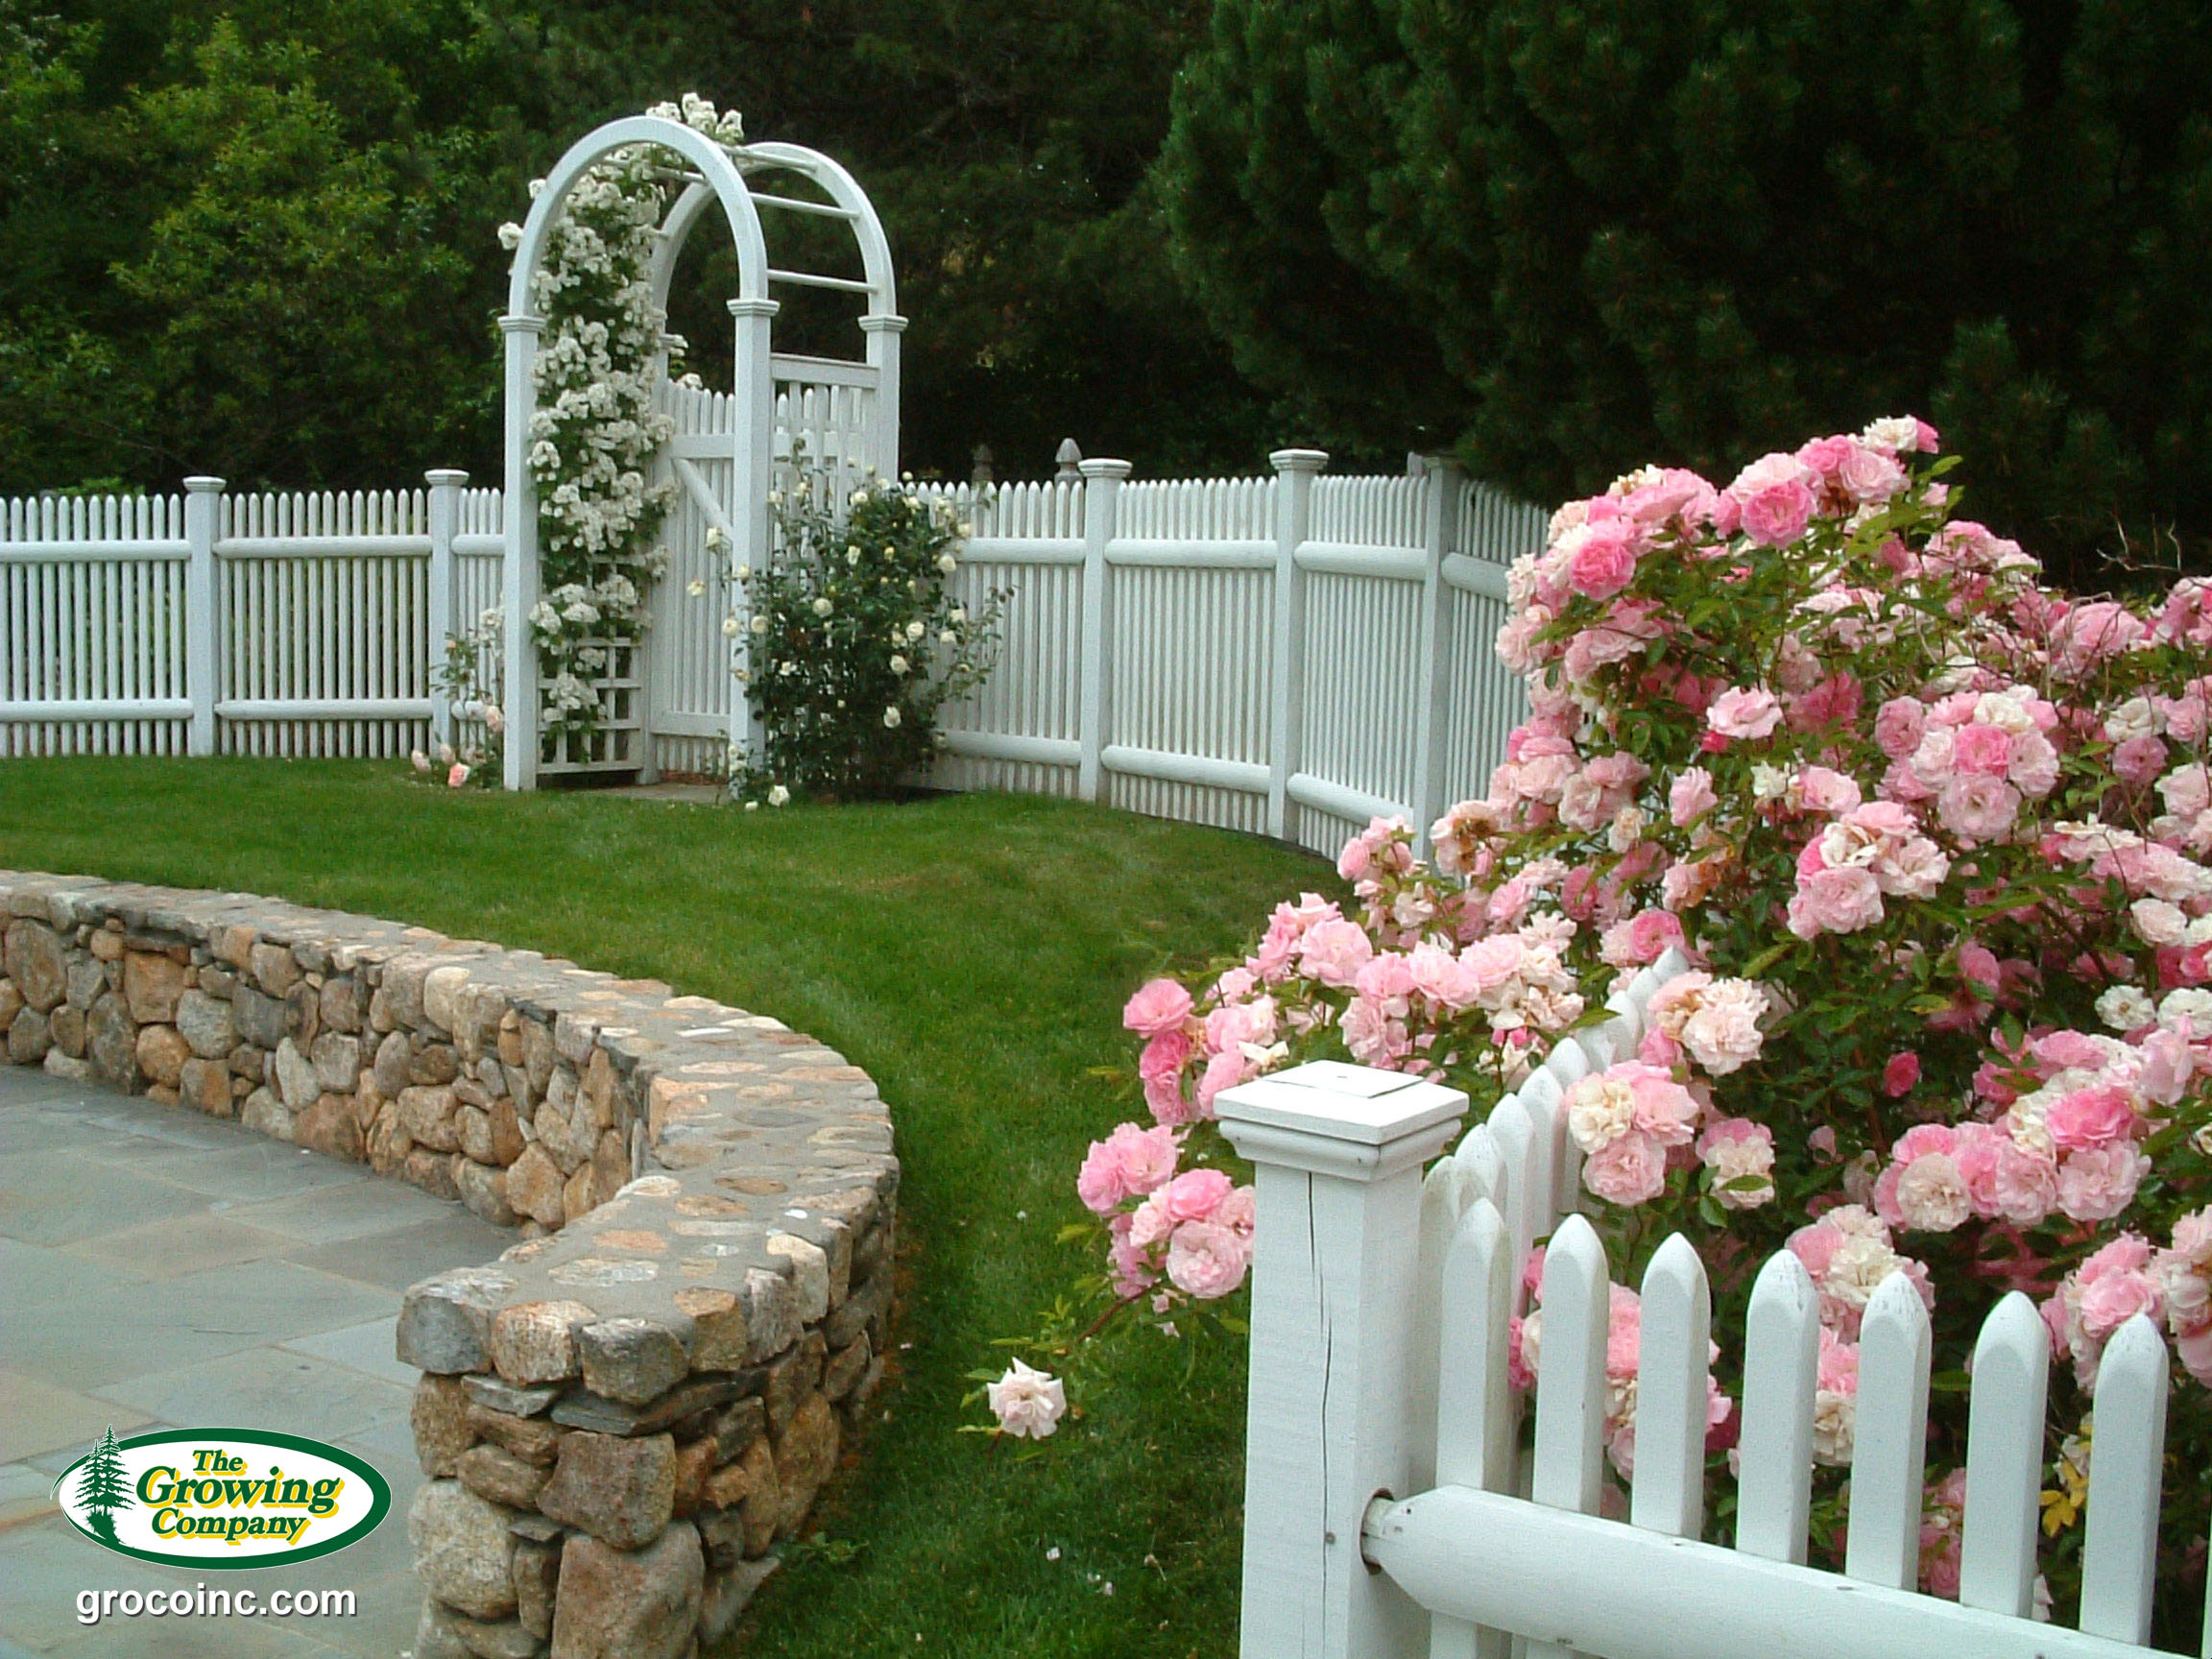 Perennial flower bed design for cotuit osterville chatham orleans roses in chatham ma mightylinksfo Image collections